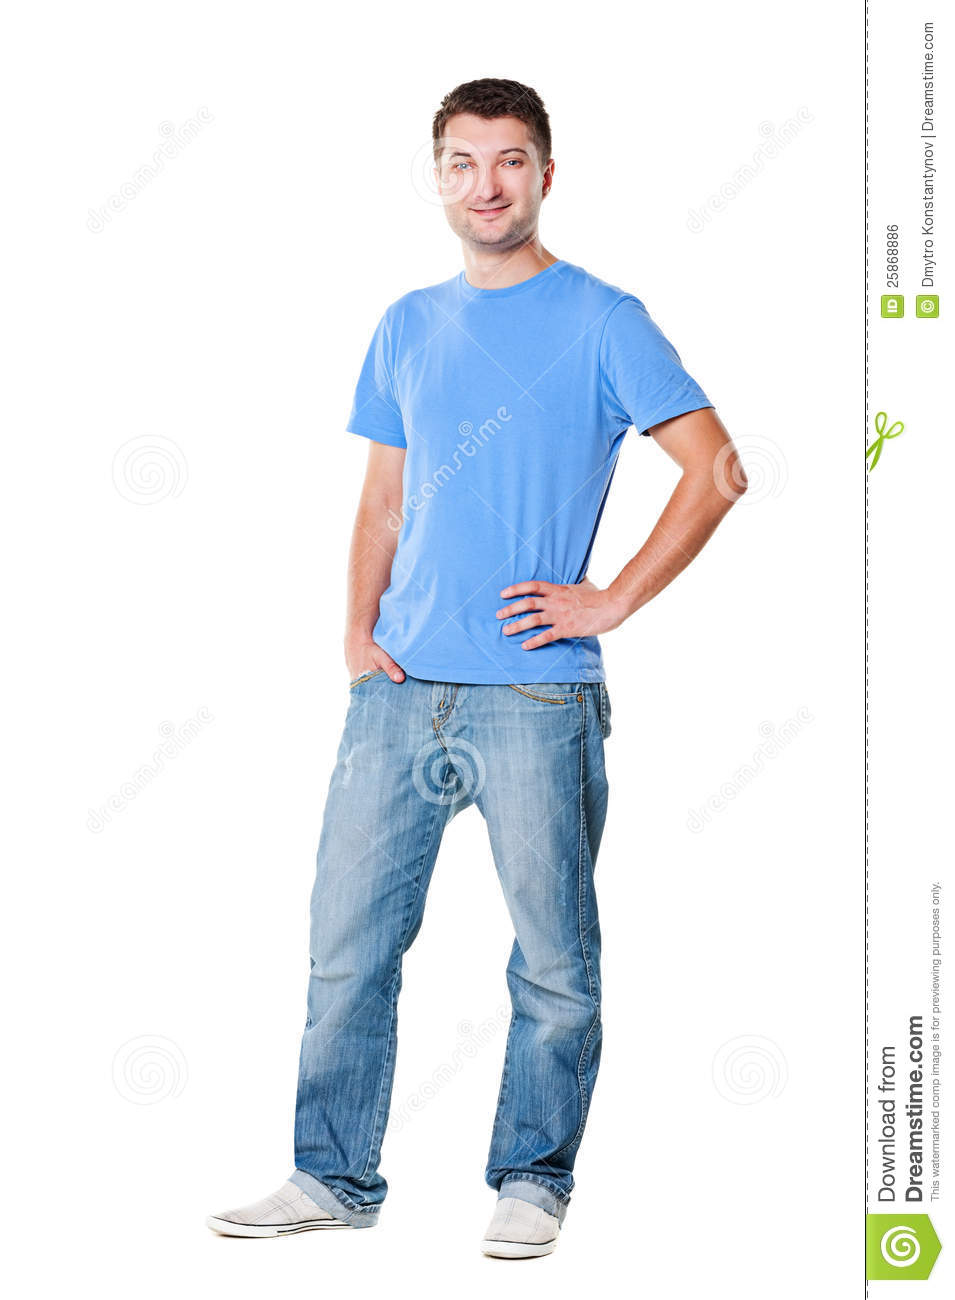 Handsome Man In T-shirt And Jeans Royalty Free Stock Image - Image ...